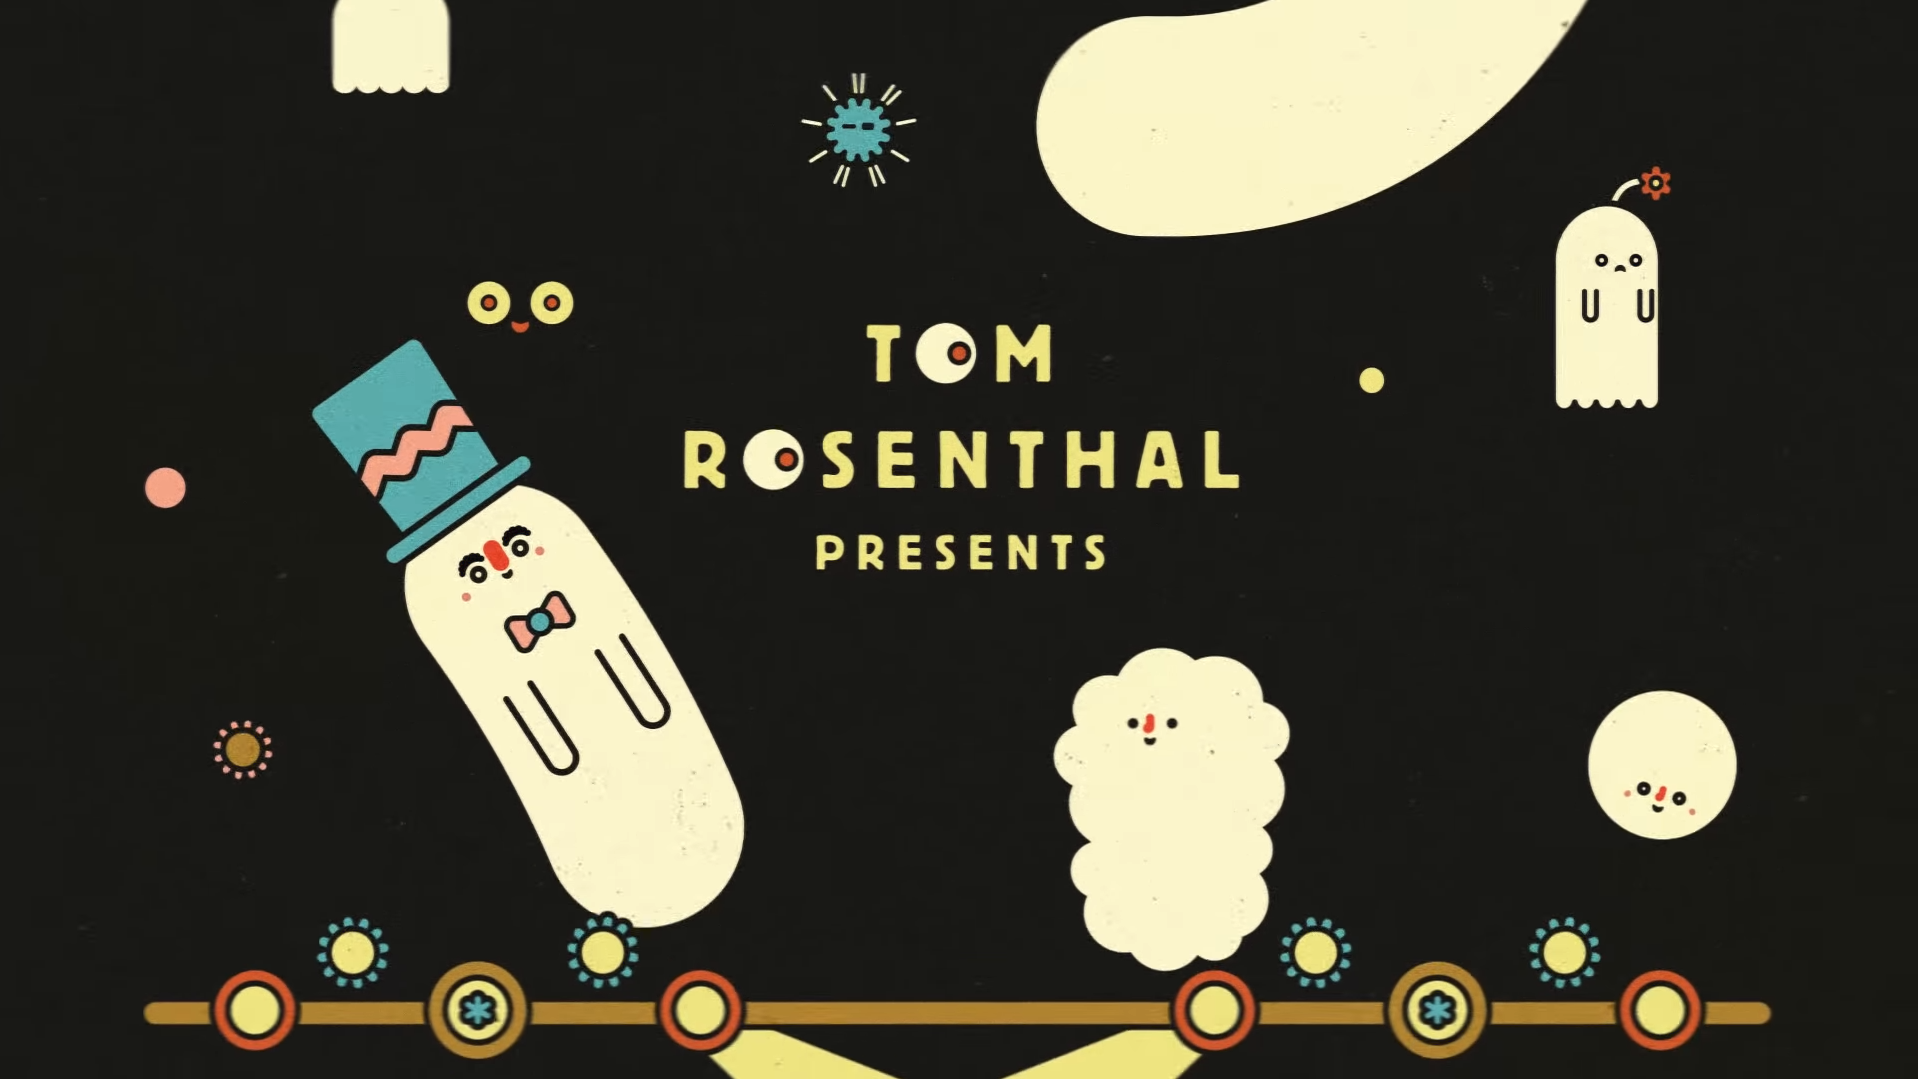 🎵 Tom Rosenthal | Don't die curious